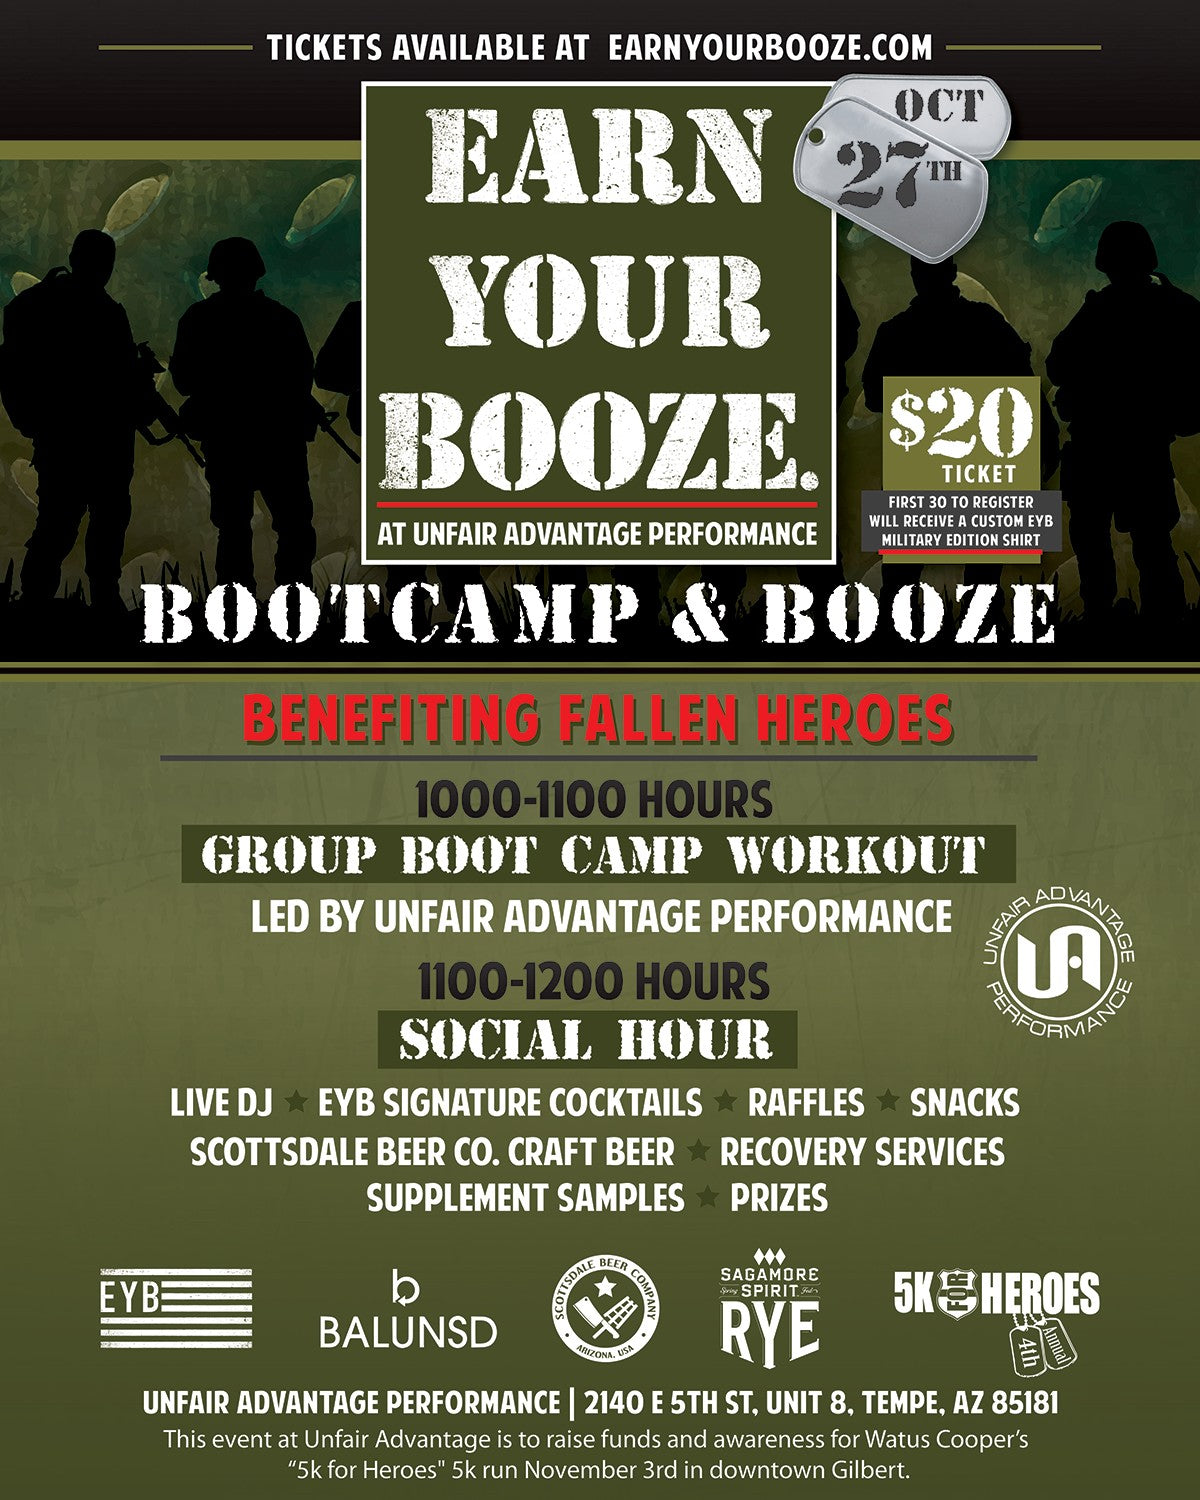 EARN YOUR WHISKEY | Bootcamp & Booze w/ Unfair Advantage 28OCT18Earn Your Booze